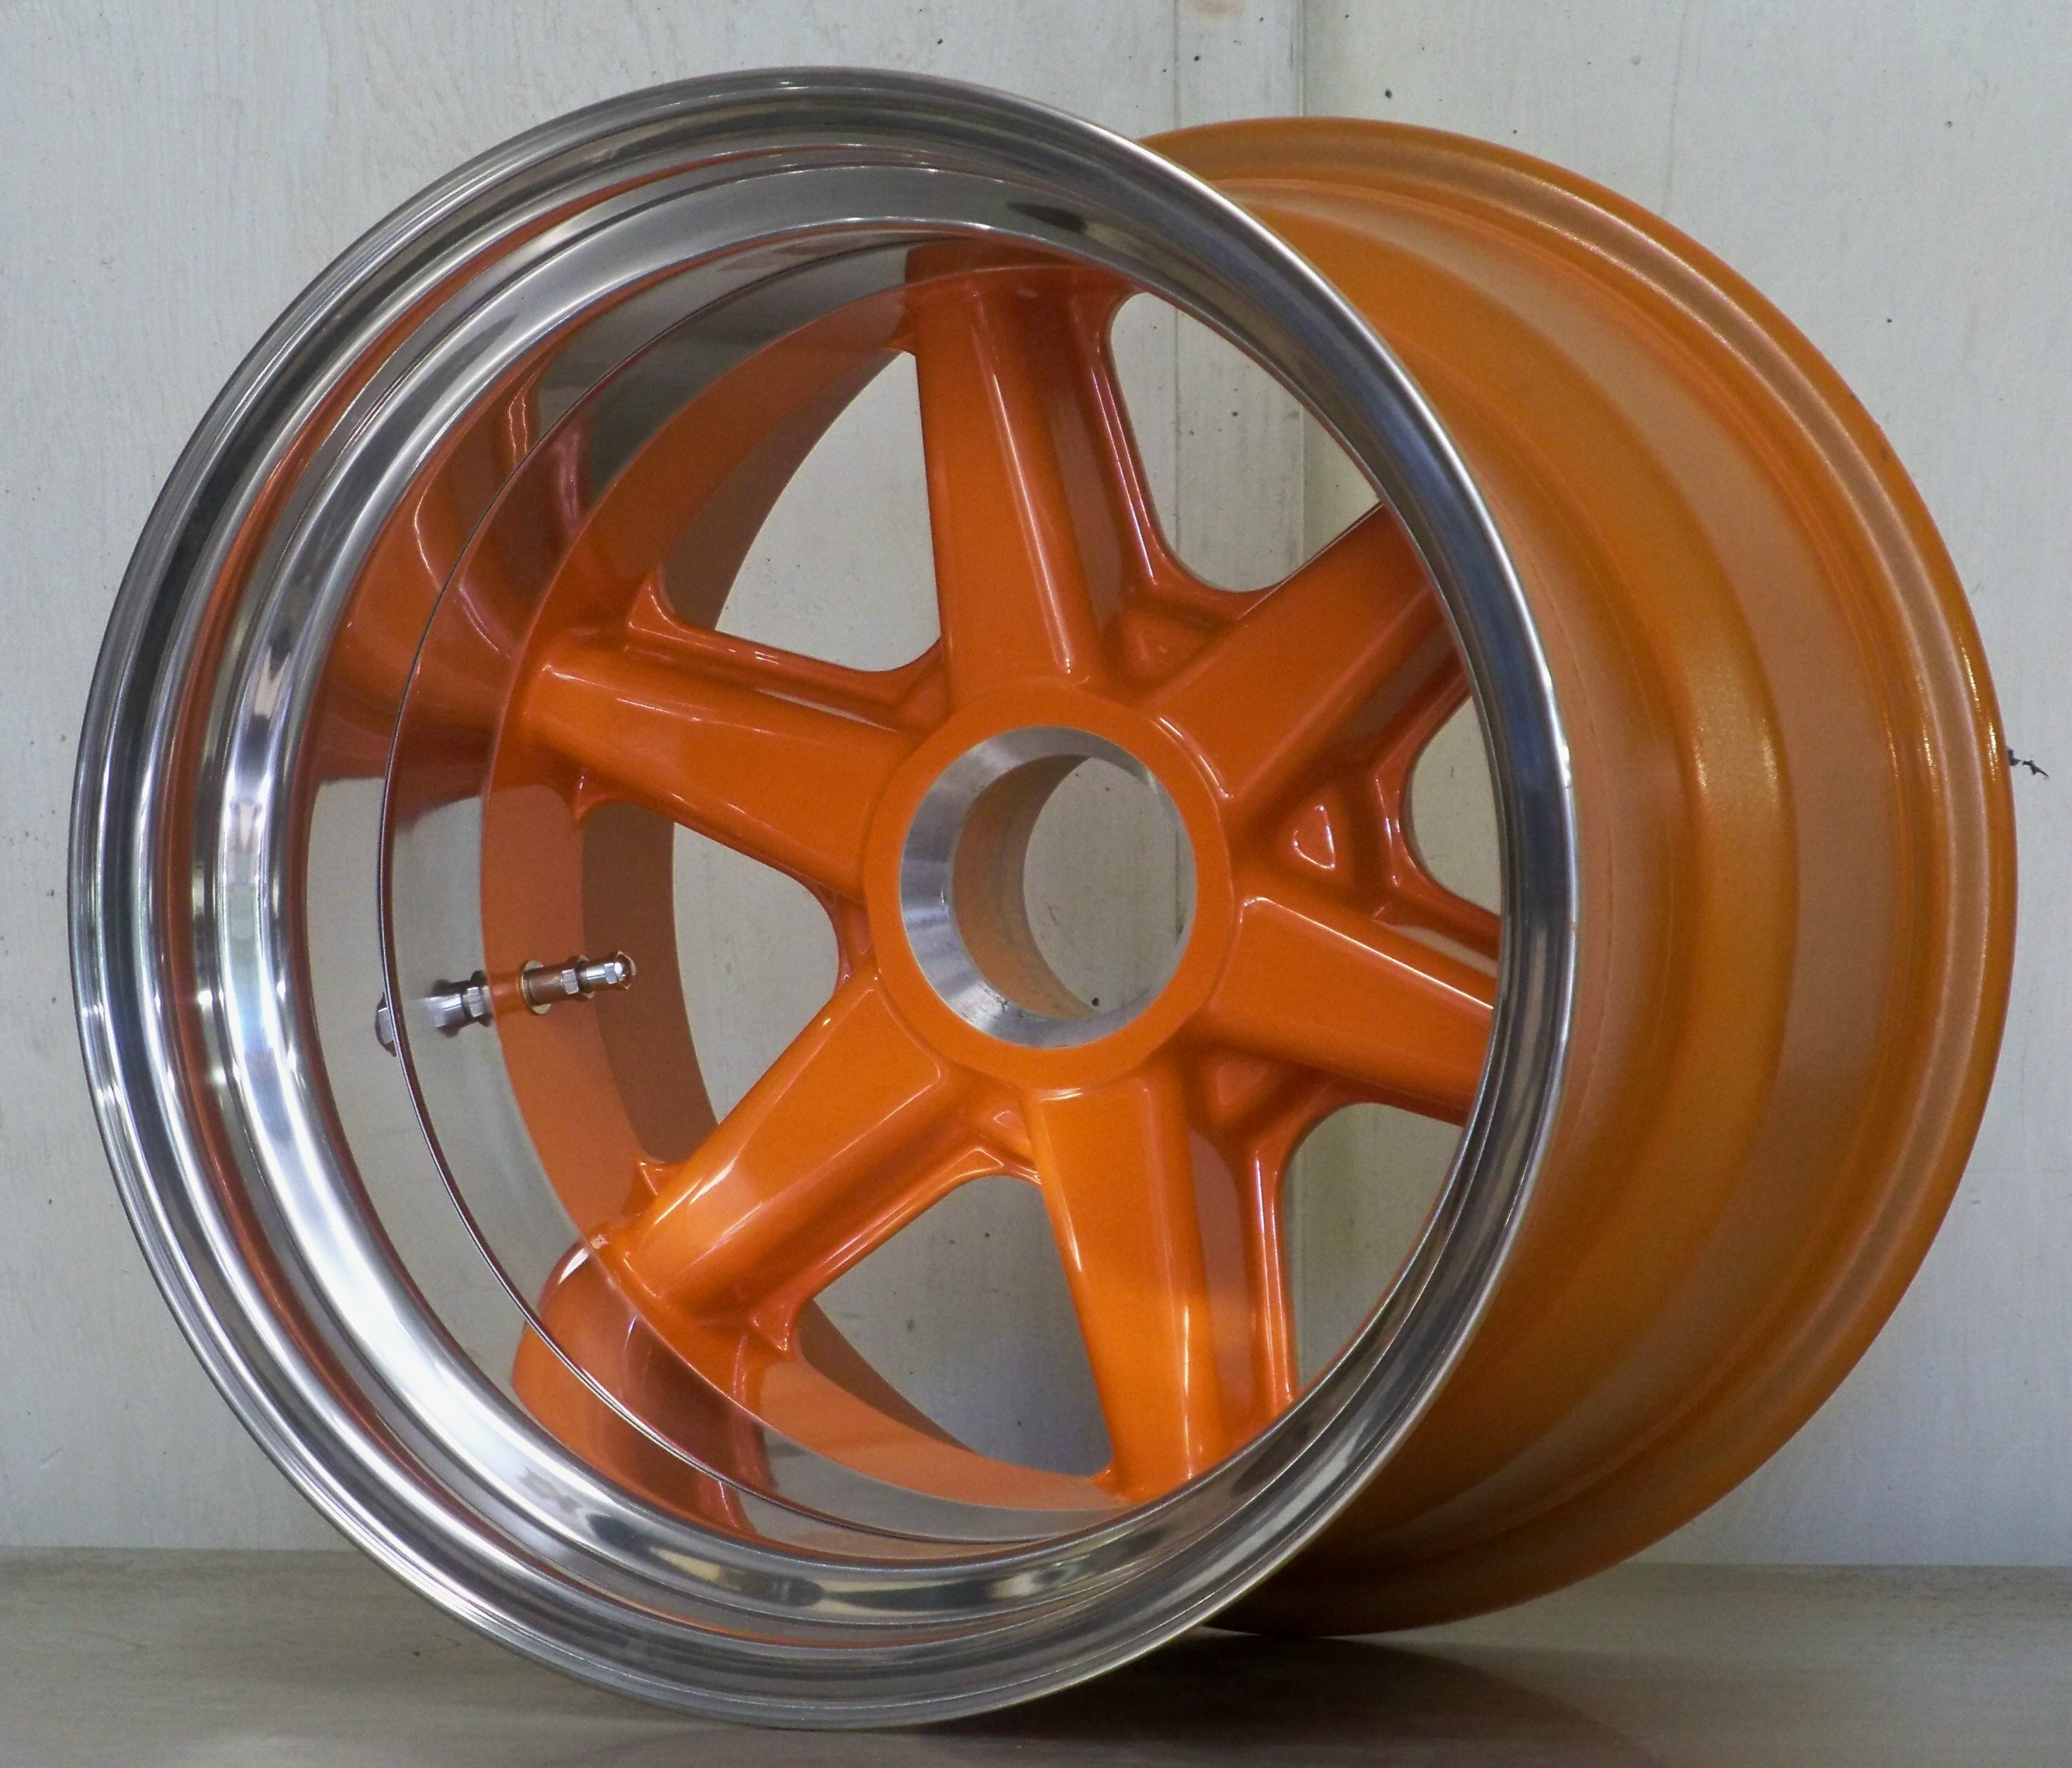 BR02 WIDE 15 x 9.5 15 x 12 wheels only